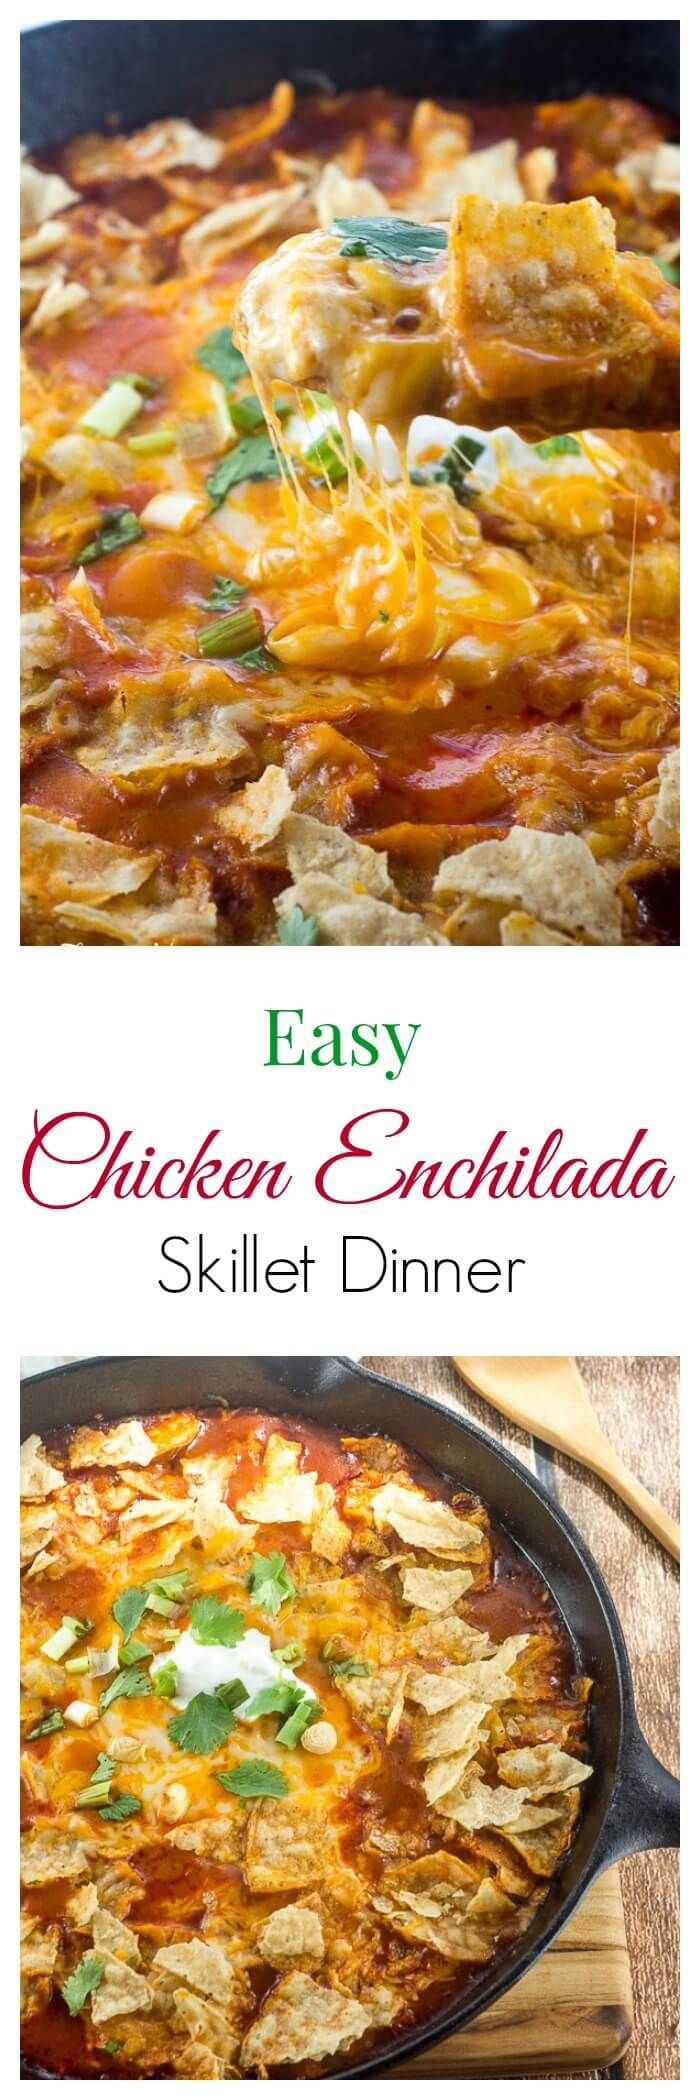 This Easy Chicken Enchilada Skillet Dinner makes a delicious hot and cheesy weeknight meal that can be on the table in under 30 minutes. ~ #YesYouCAN  @conagrafoods #ad